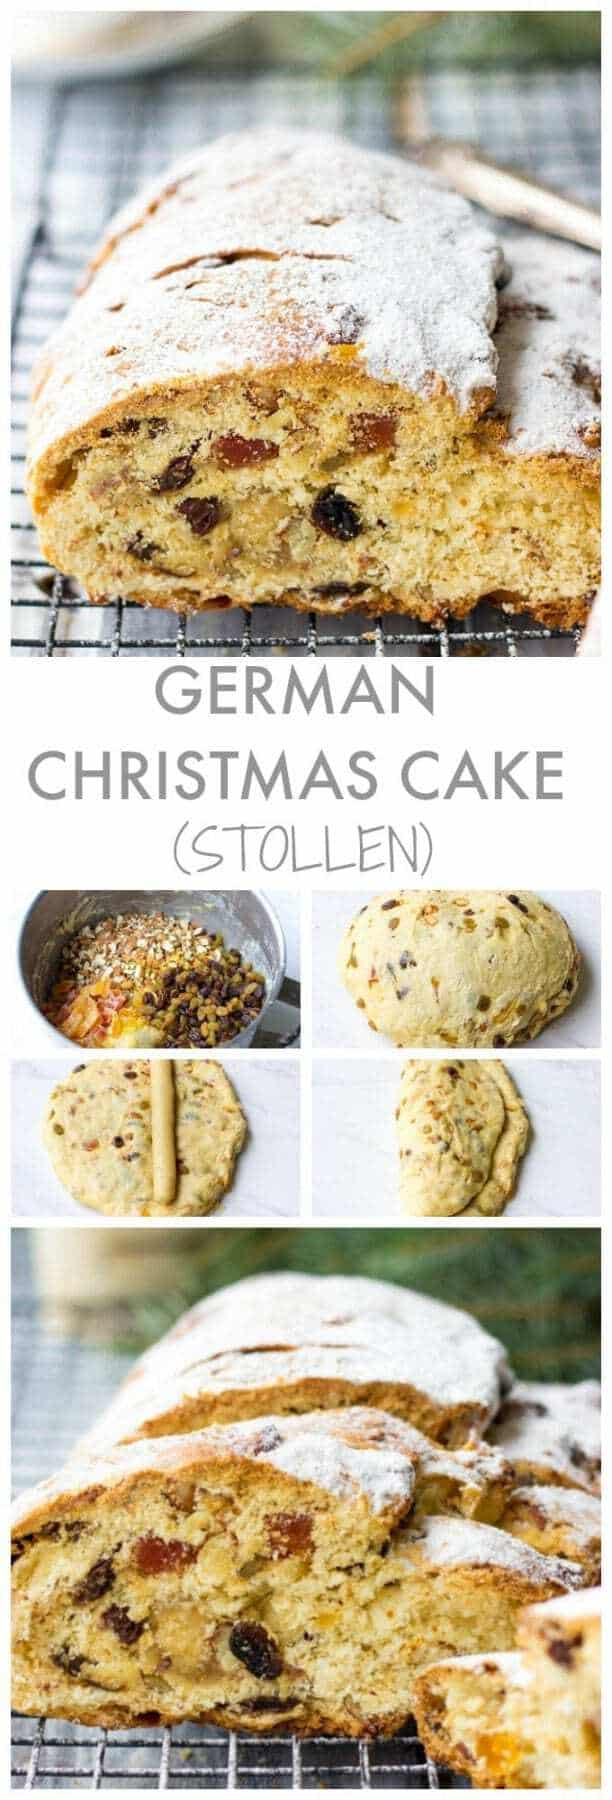 Looking for traditional Christmas dessert recipes? Try German Christmas Cake - Stollen. It is packed with dried fruits, almonds and marzipan and sure to become a beautiful addition to your Christmas dinner menu.